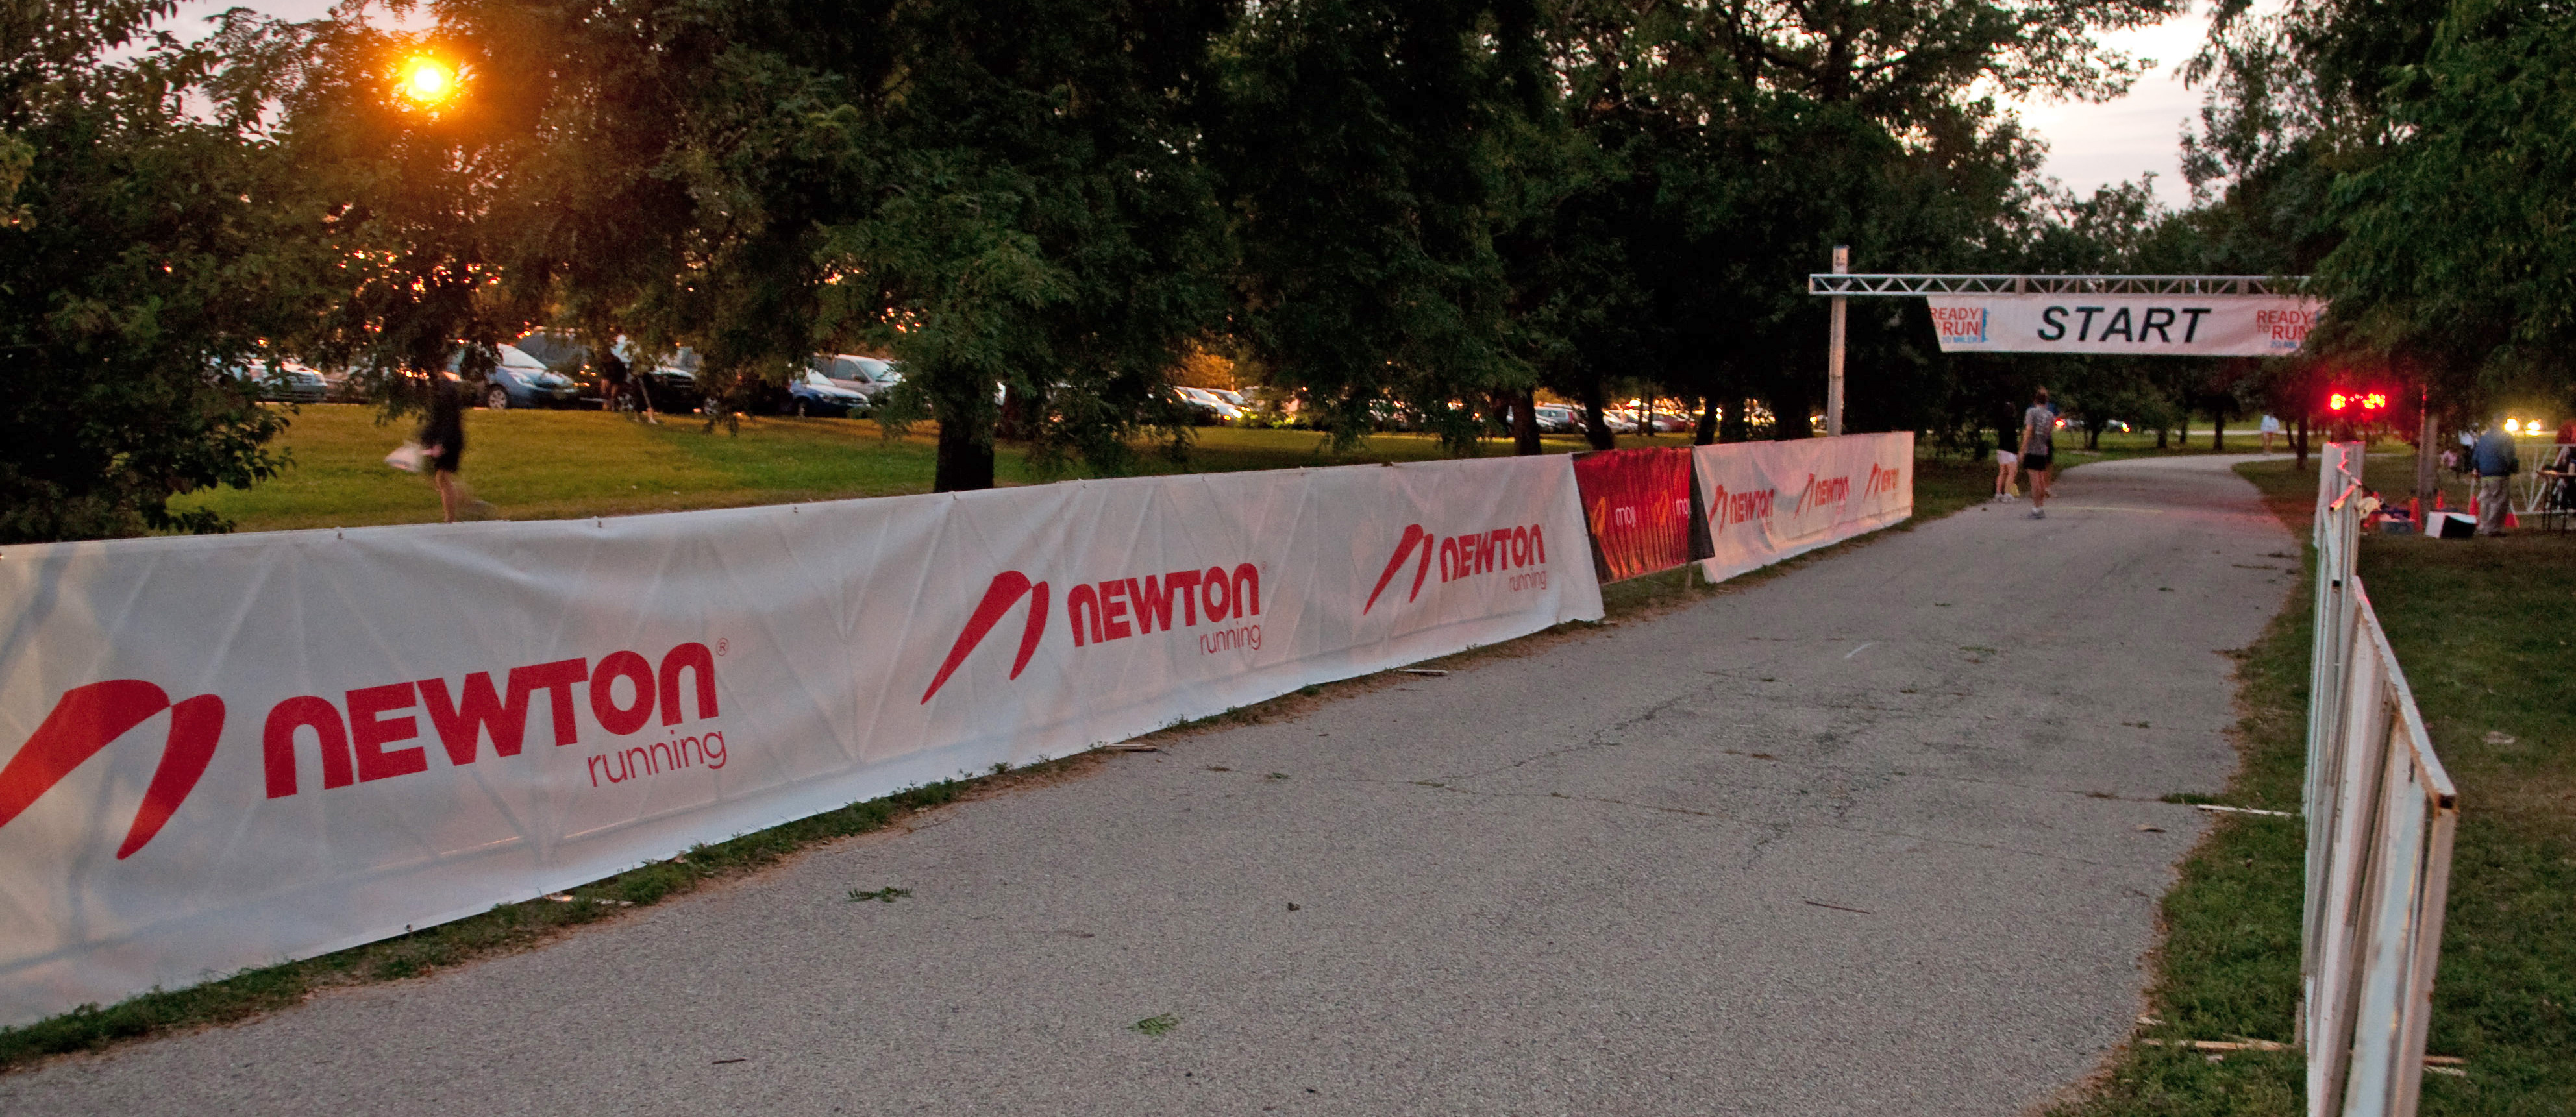 Newton Running is sponsoring the CARA Ready to Run 20-miler for the second year in a row. c Chad Marek, 2011